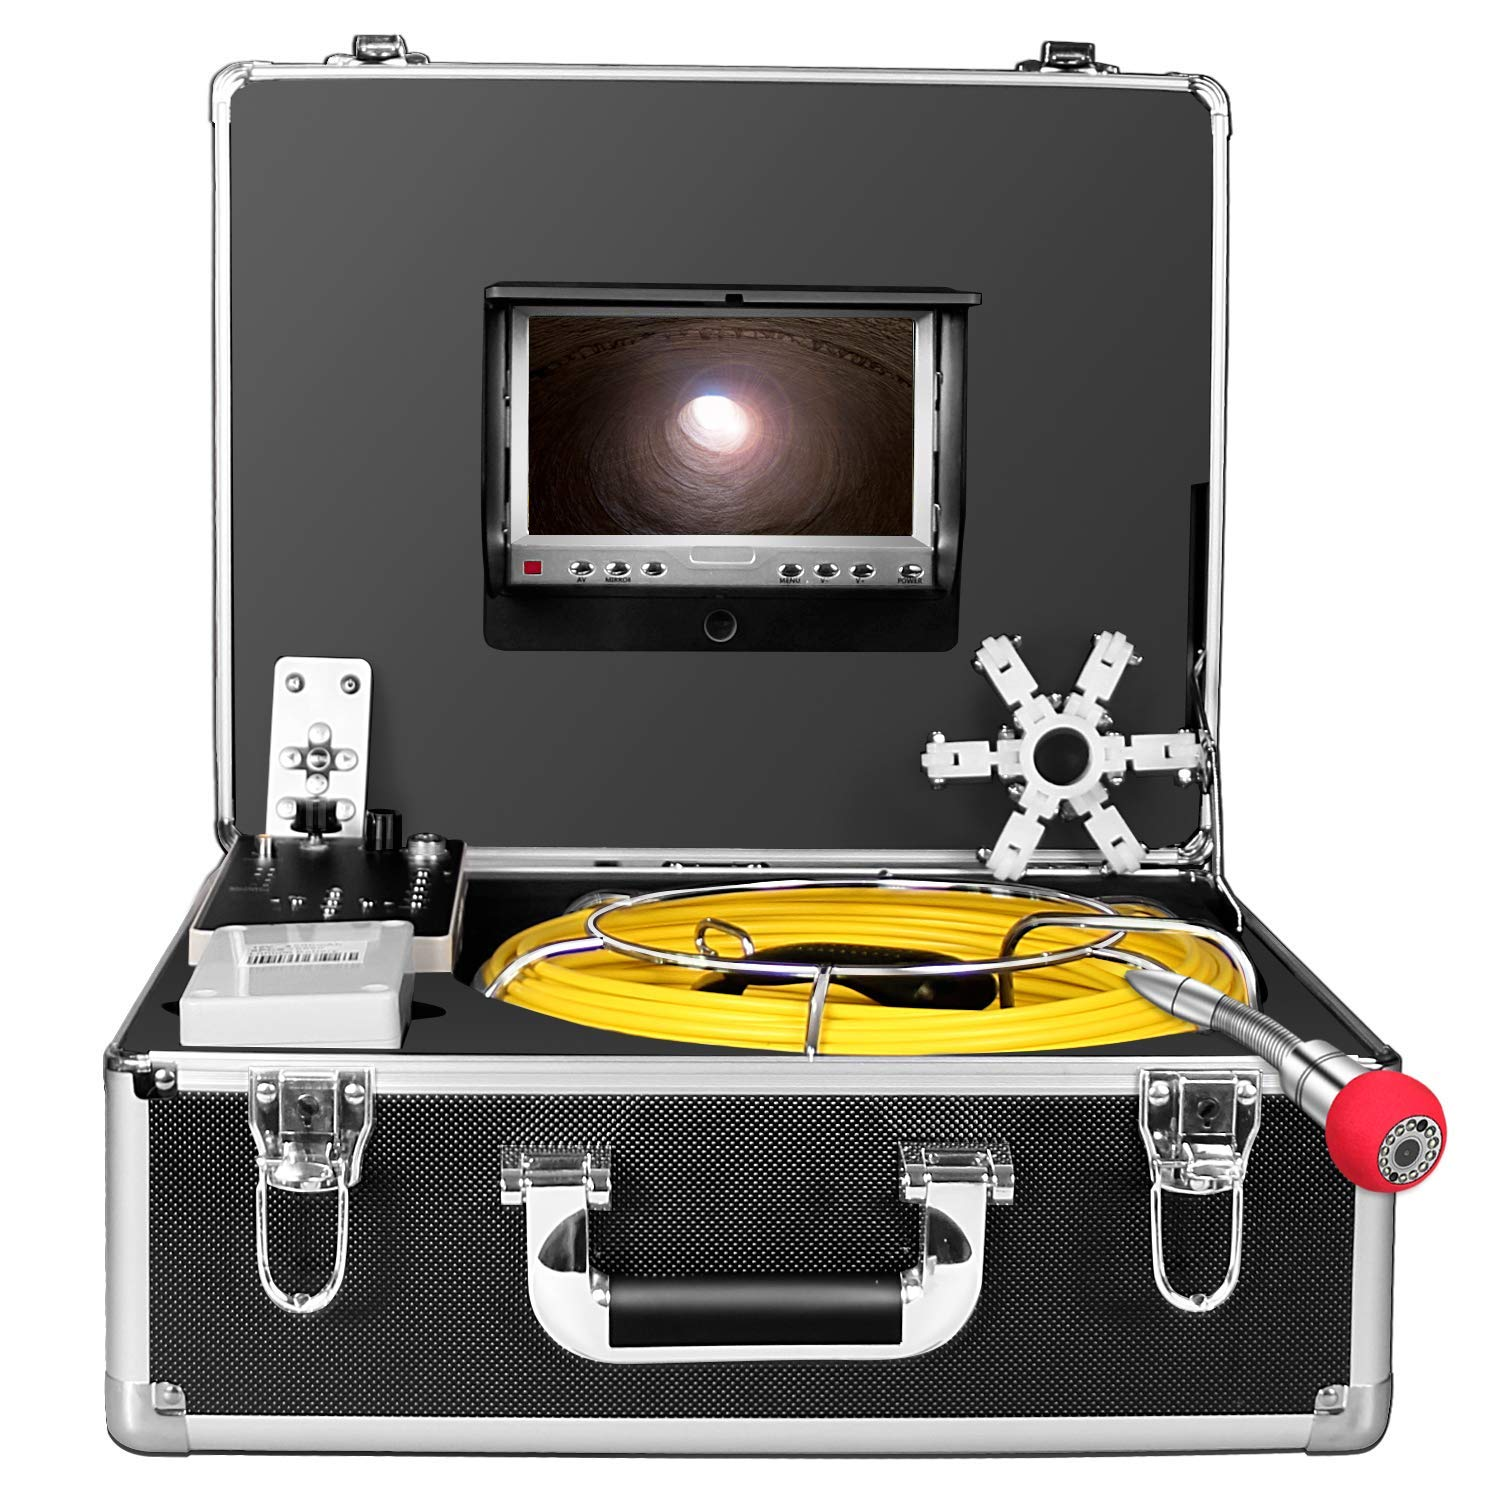 Pipe Inspection Camera,100ft Sewer Camera 30M Cable Pipeline Drain Sewer Industrial Endoscope Waterproof IP68 Cable Snake Video System with 7 Inch LCD Monitor 1000TVL Sony CCD DVR Recorder (30M-DVR)